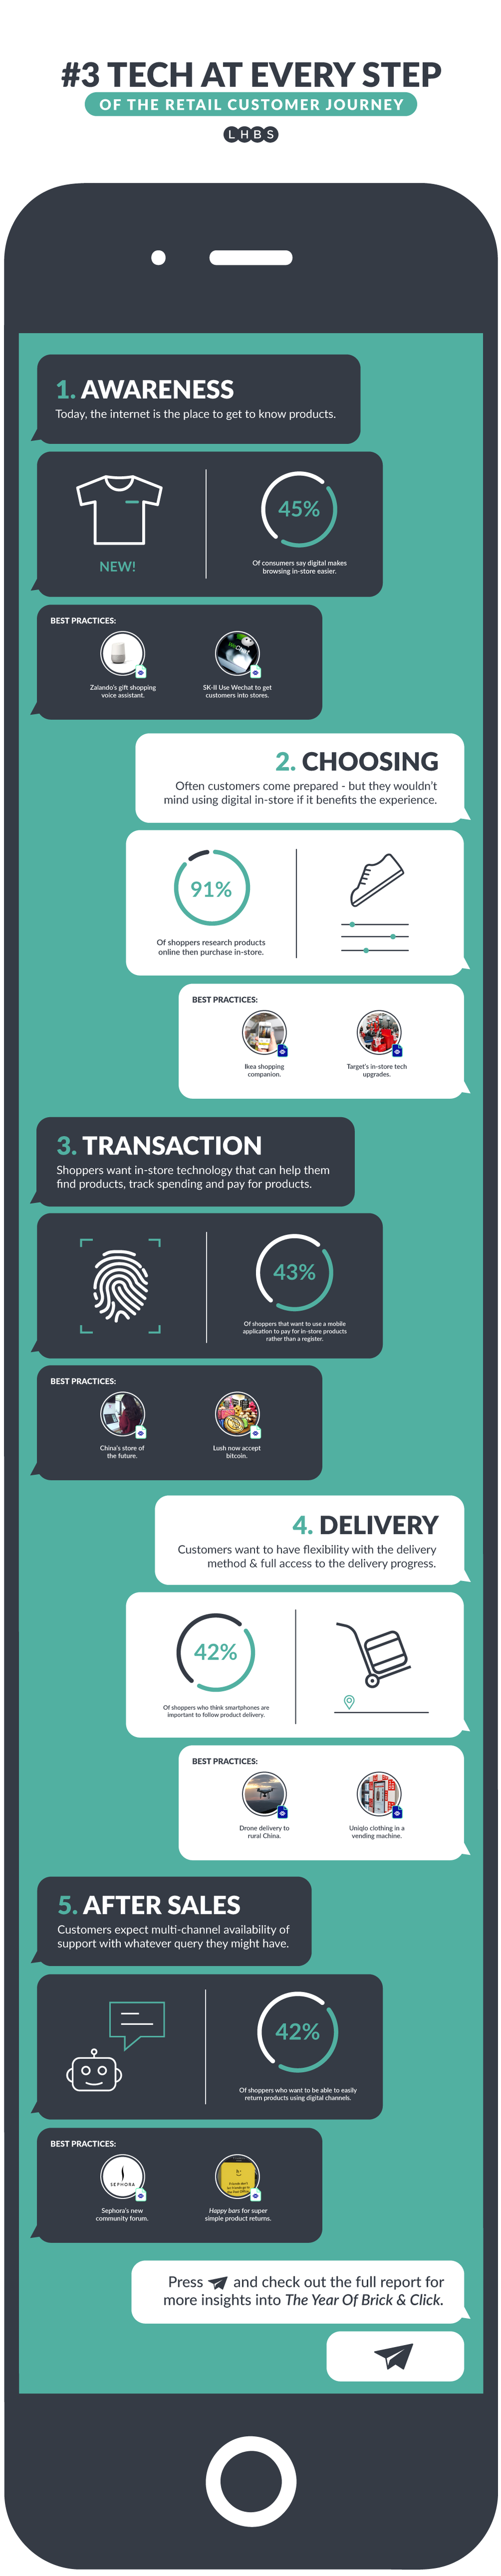 technology_retail_customer_journey_infographic.png